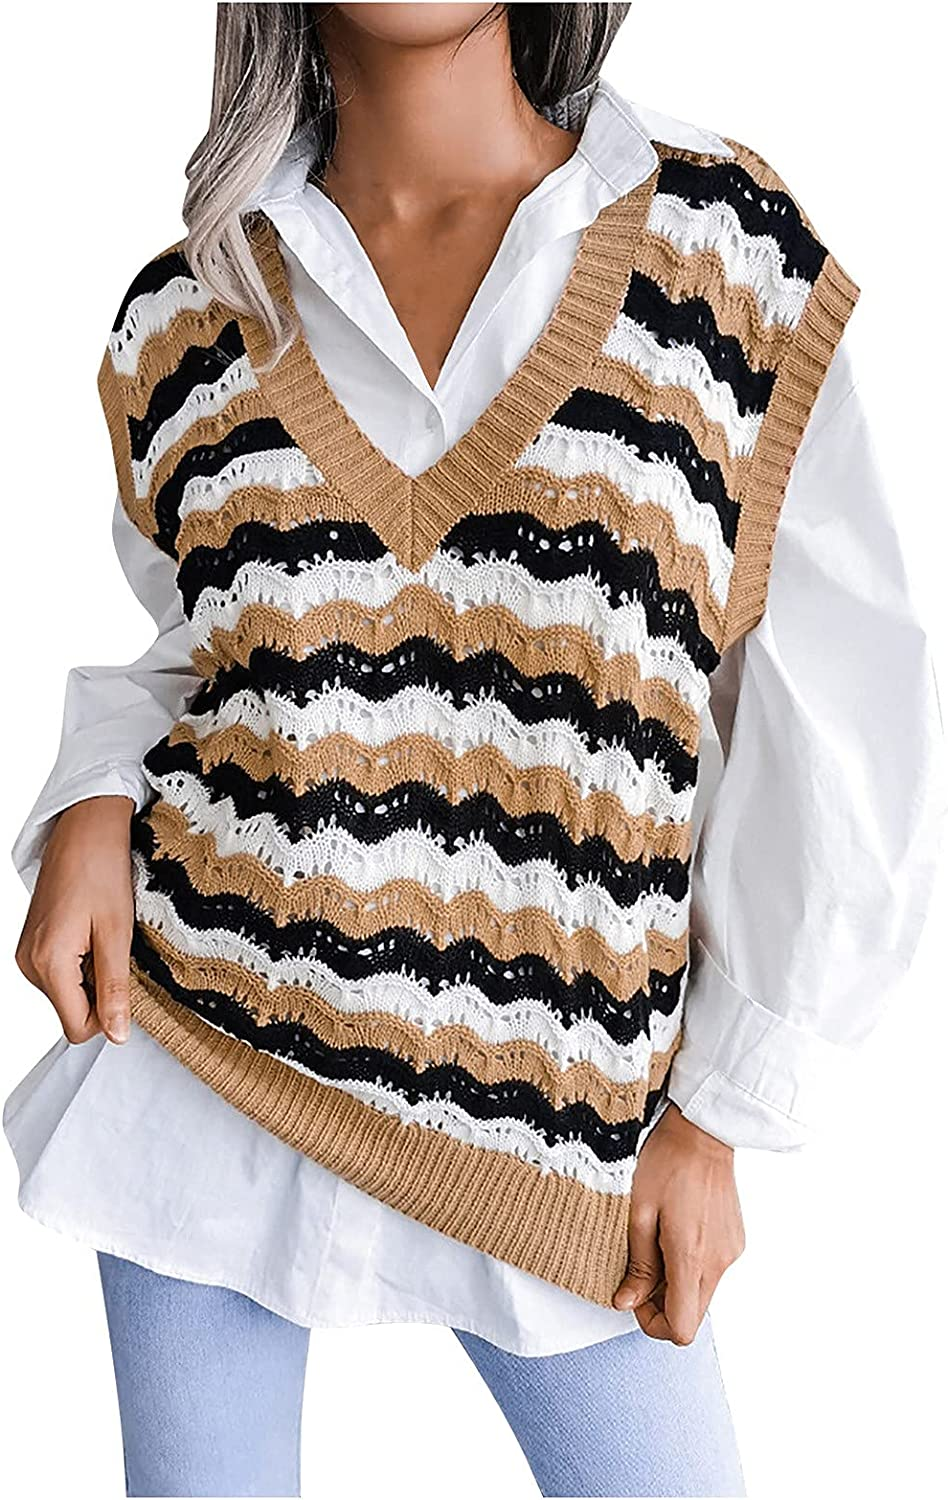 Tops for Women Casual Loose Knit Vest Fashion Women's Striped Hollow V-neck Sweater